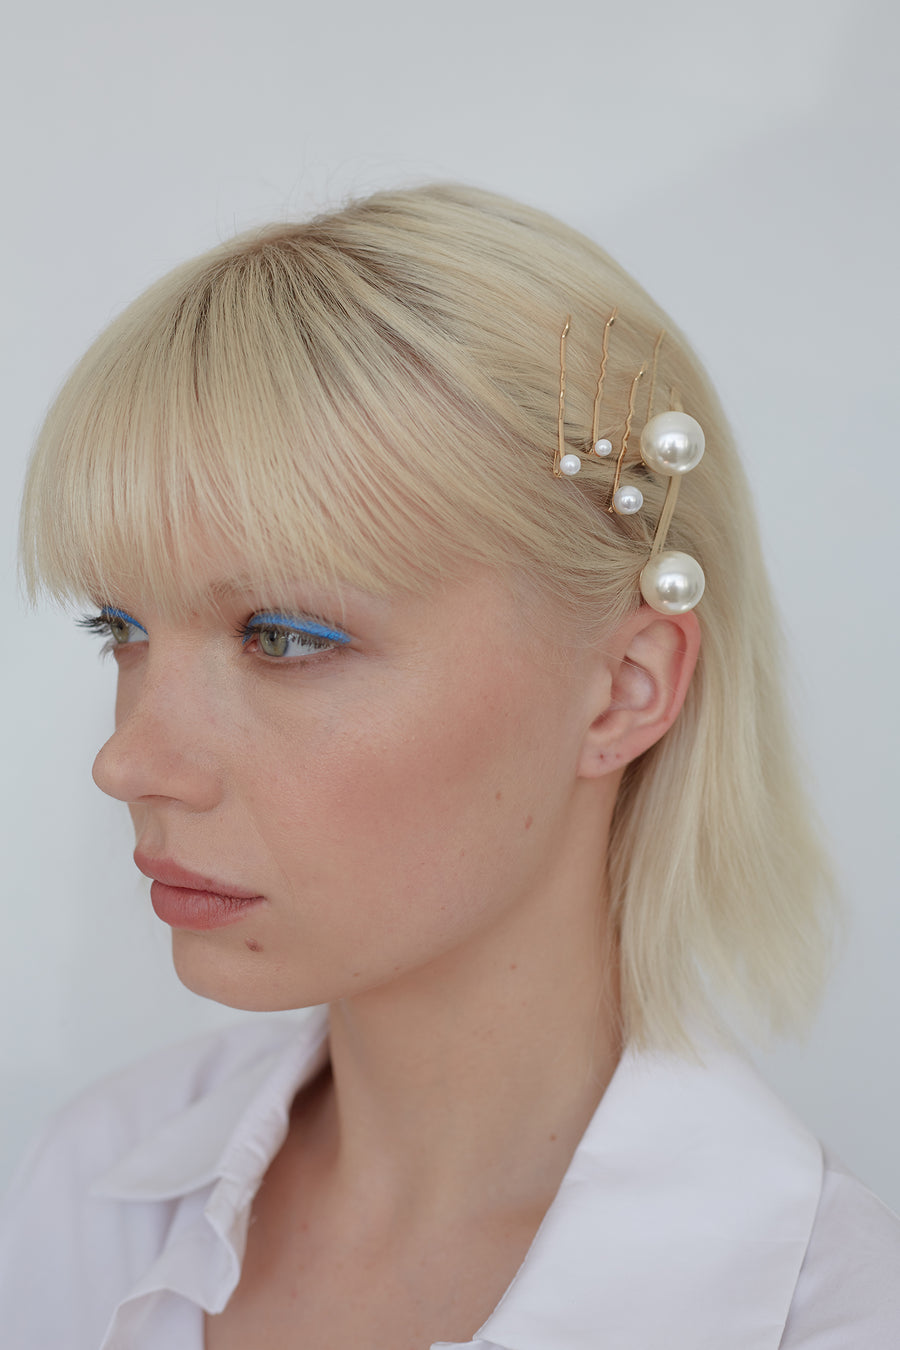 Avenue Stardust Hair Pins in Gold and Pearl from the The New Trend